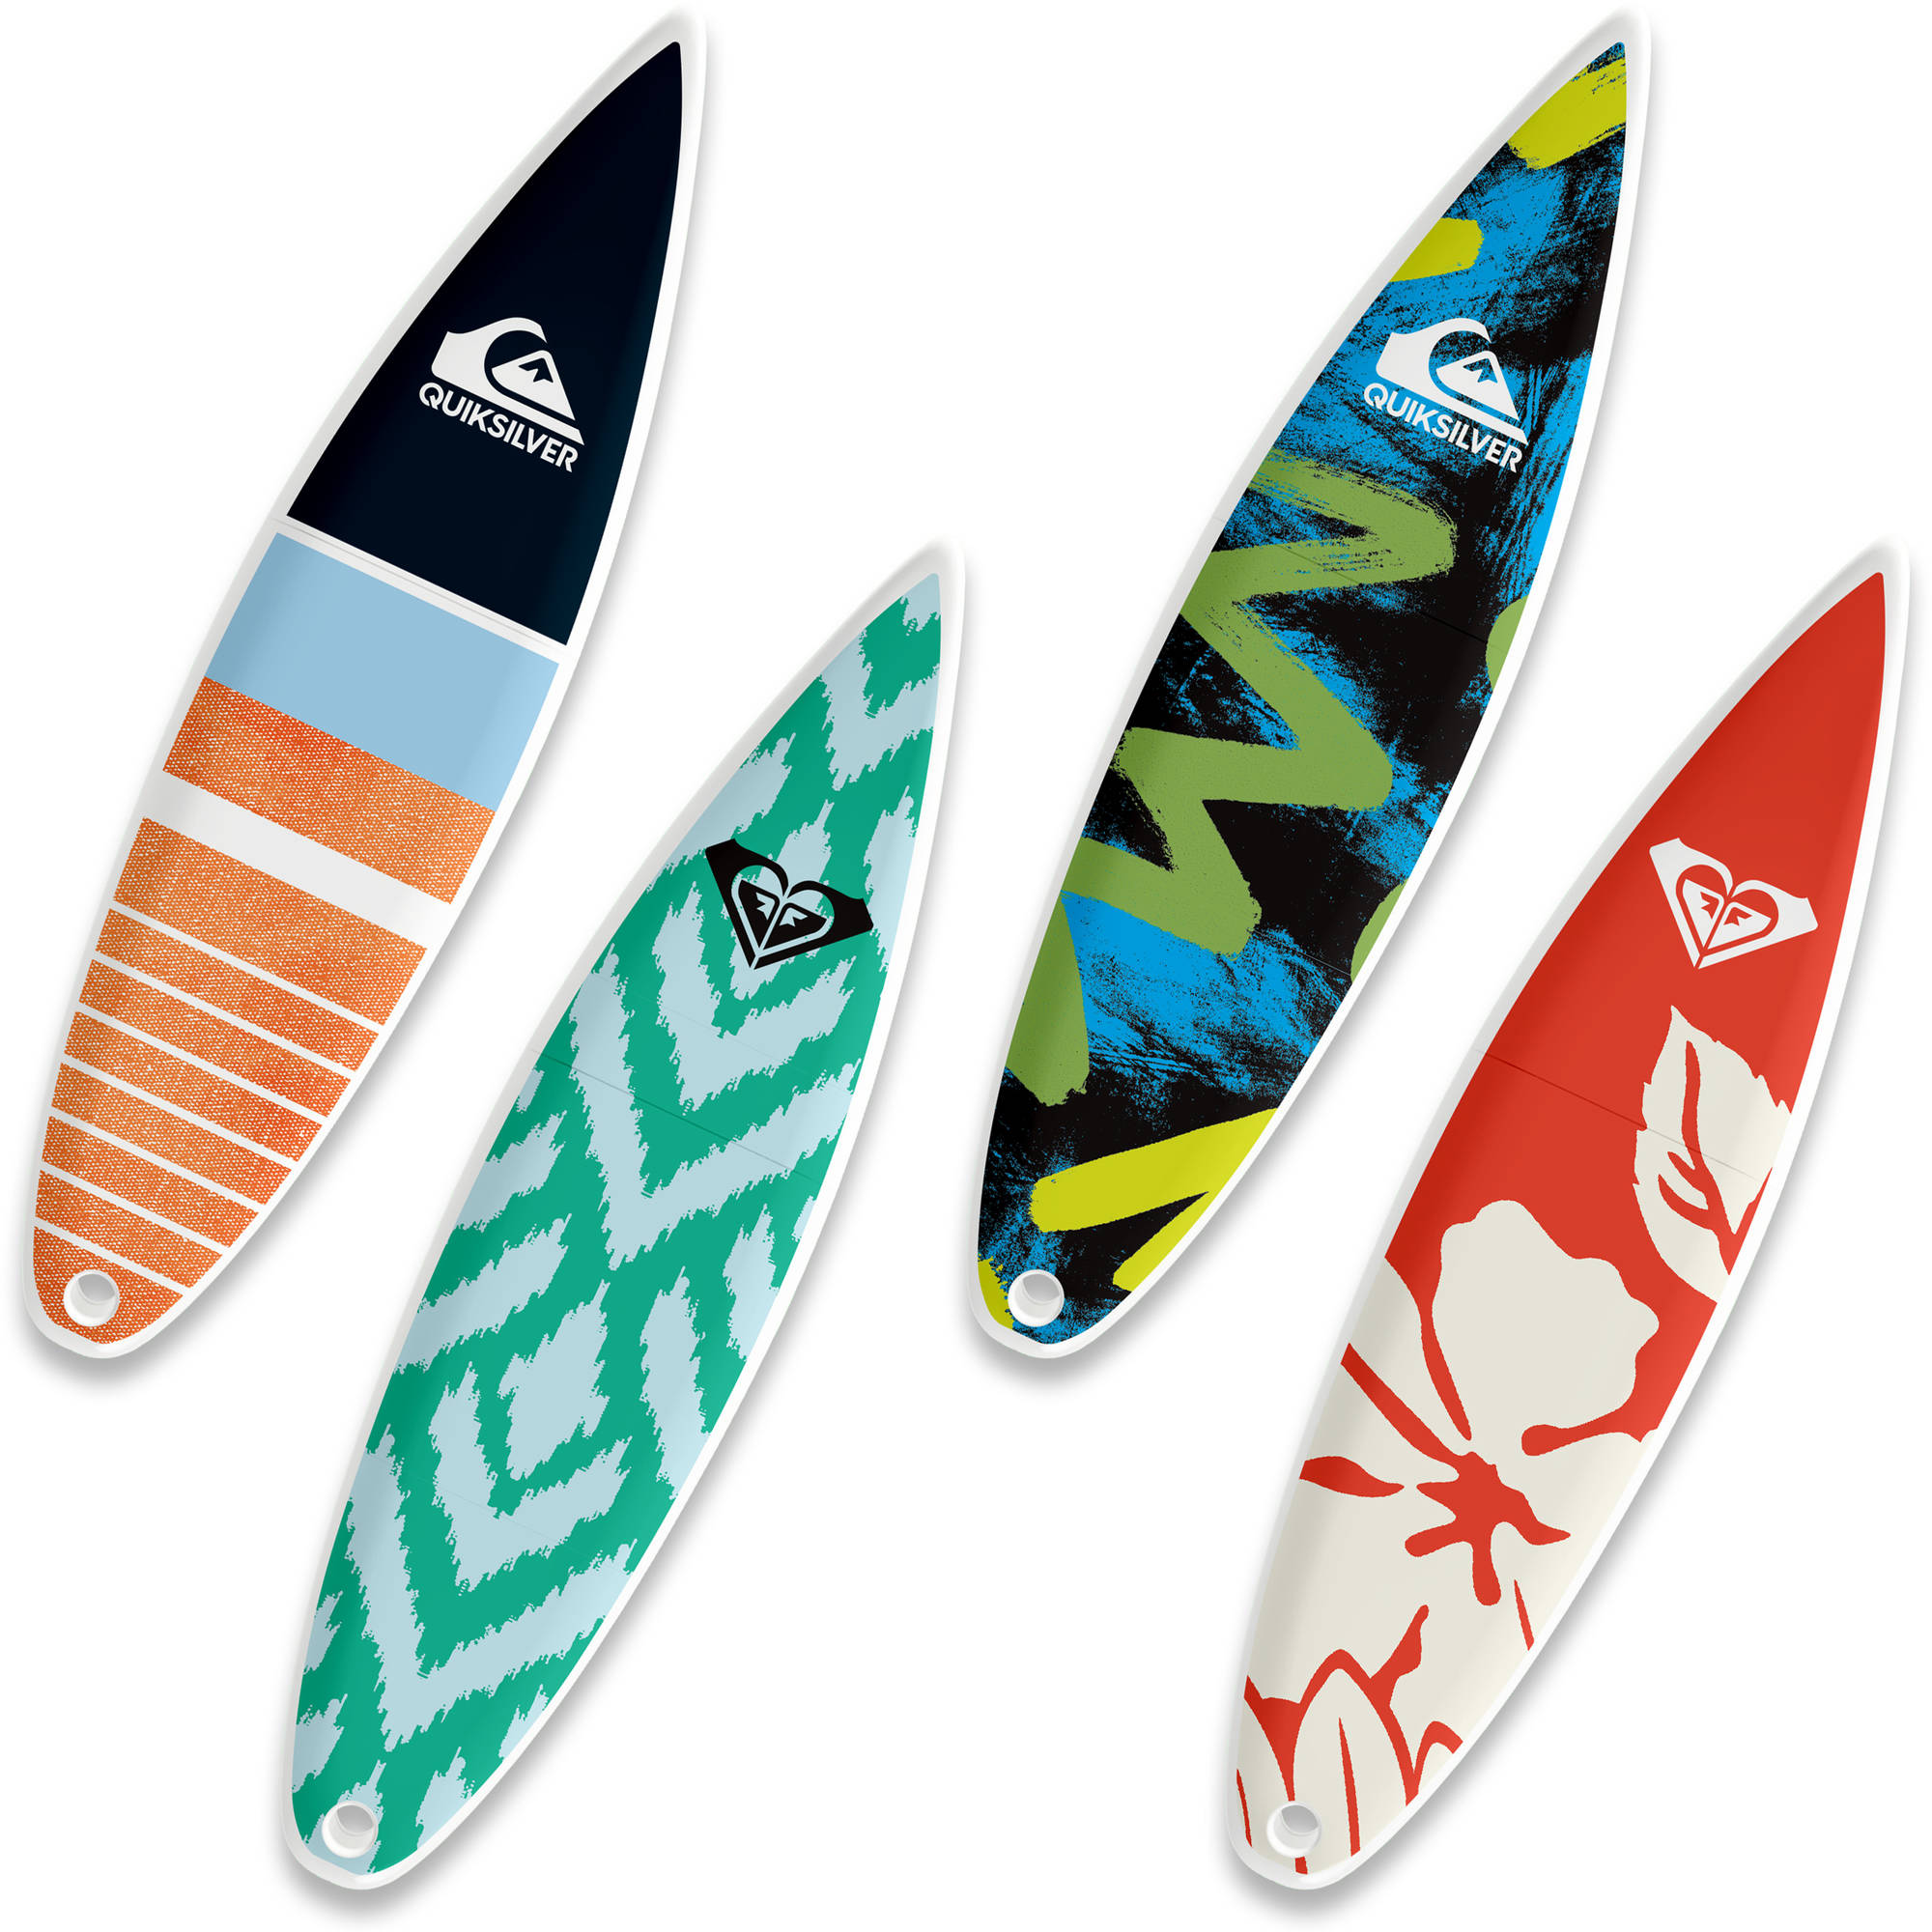 16GB EP ASD USB, Quiksilver SurfDrive and Roxy SurfDrive, 4-Pack